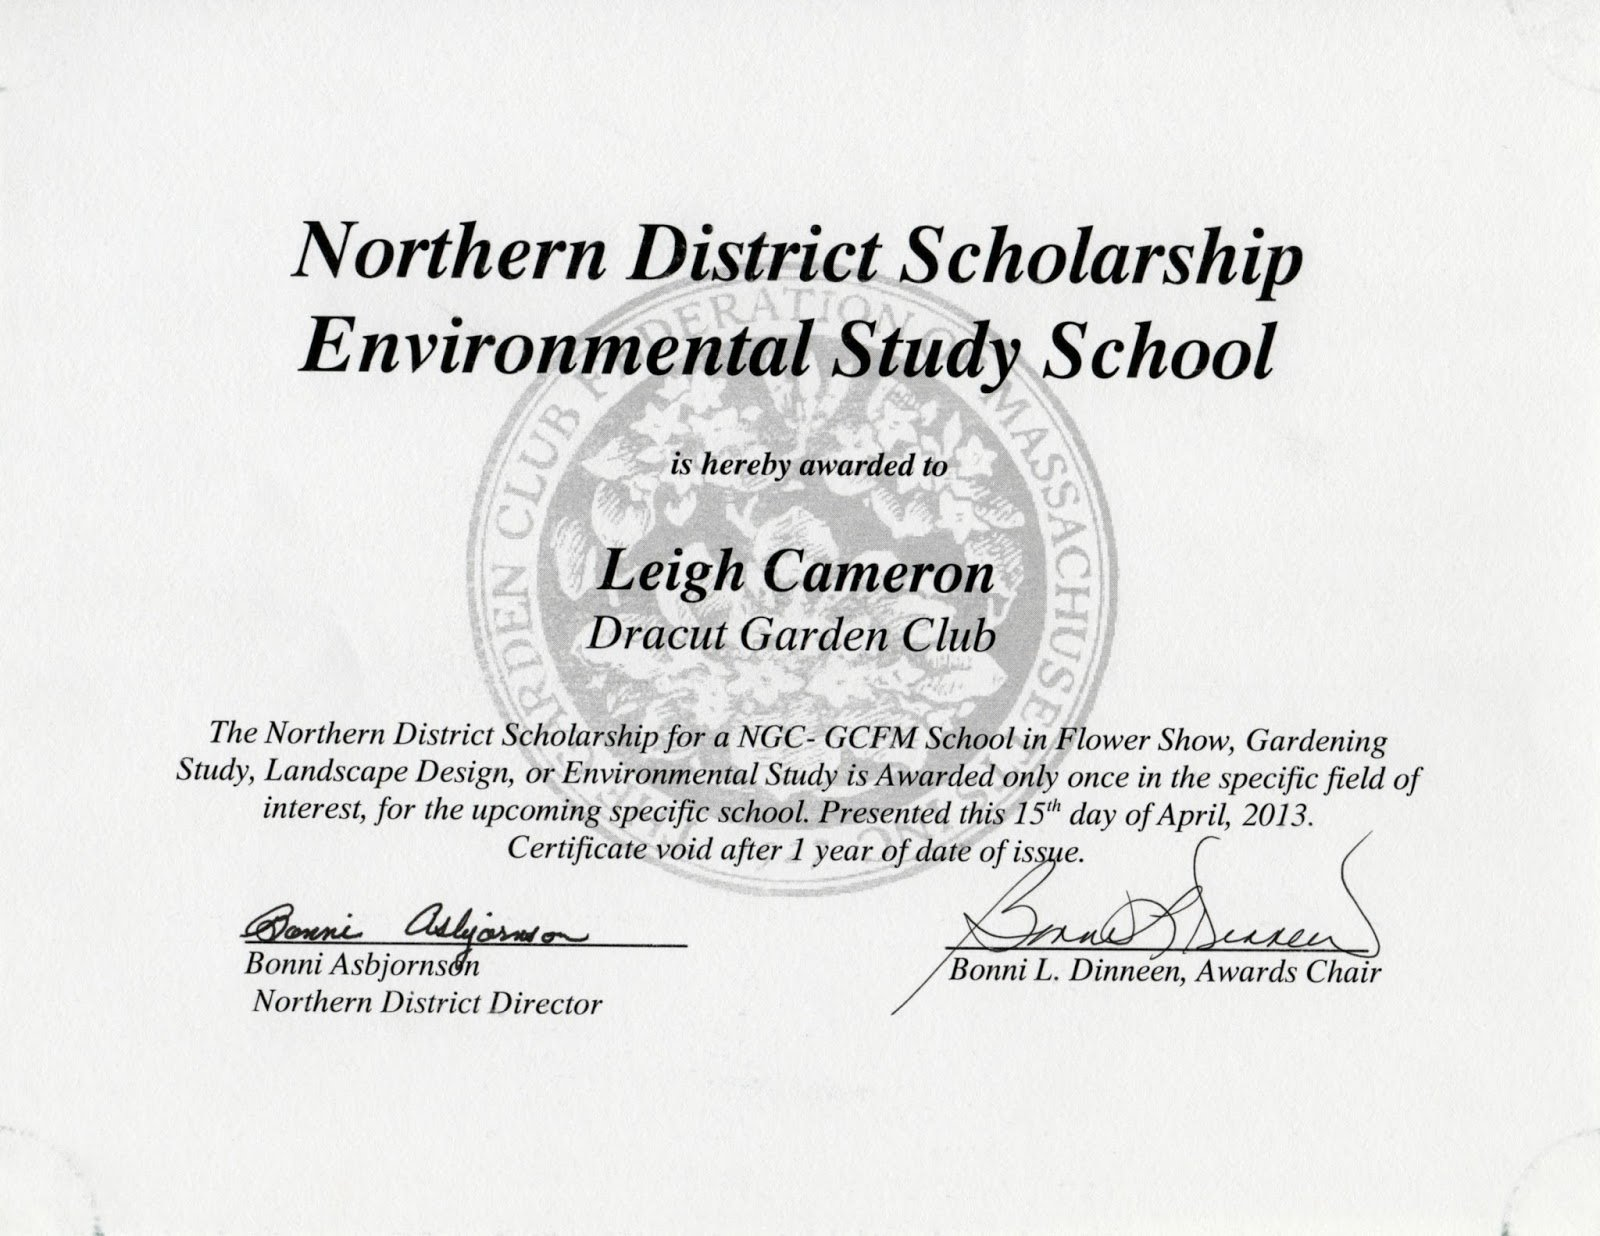 Printable Certificate Of Scholarship Award